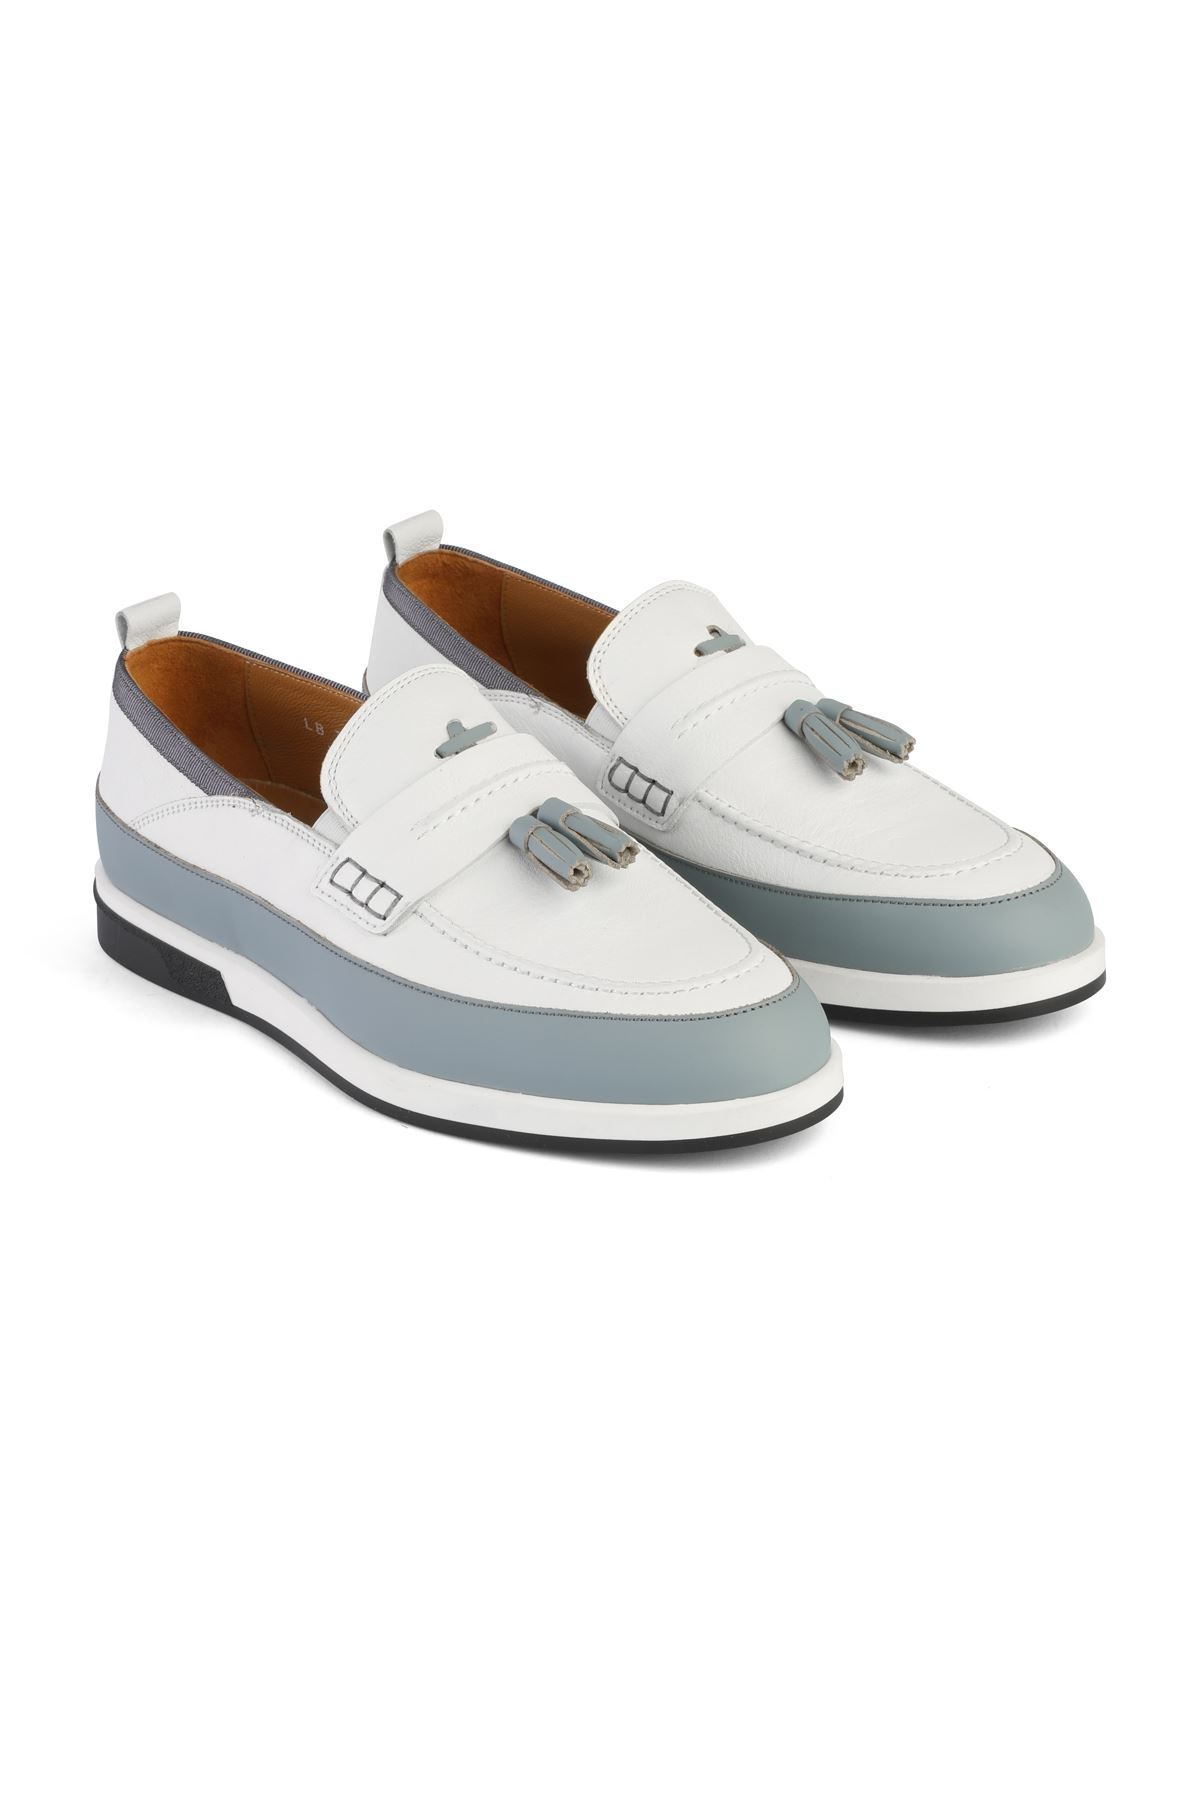 Libero 3366 White Loafer Shoes